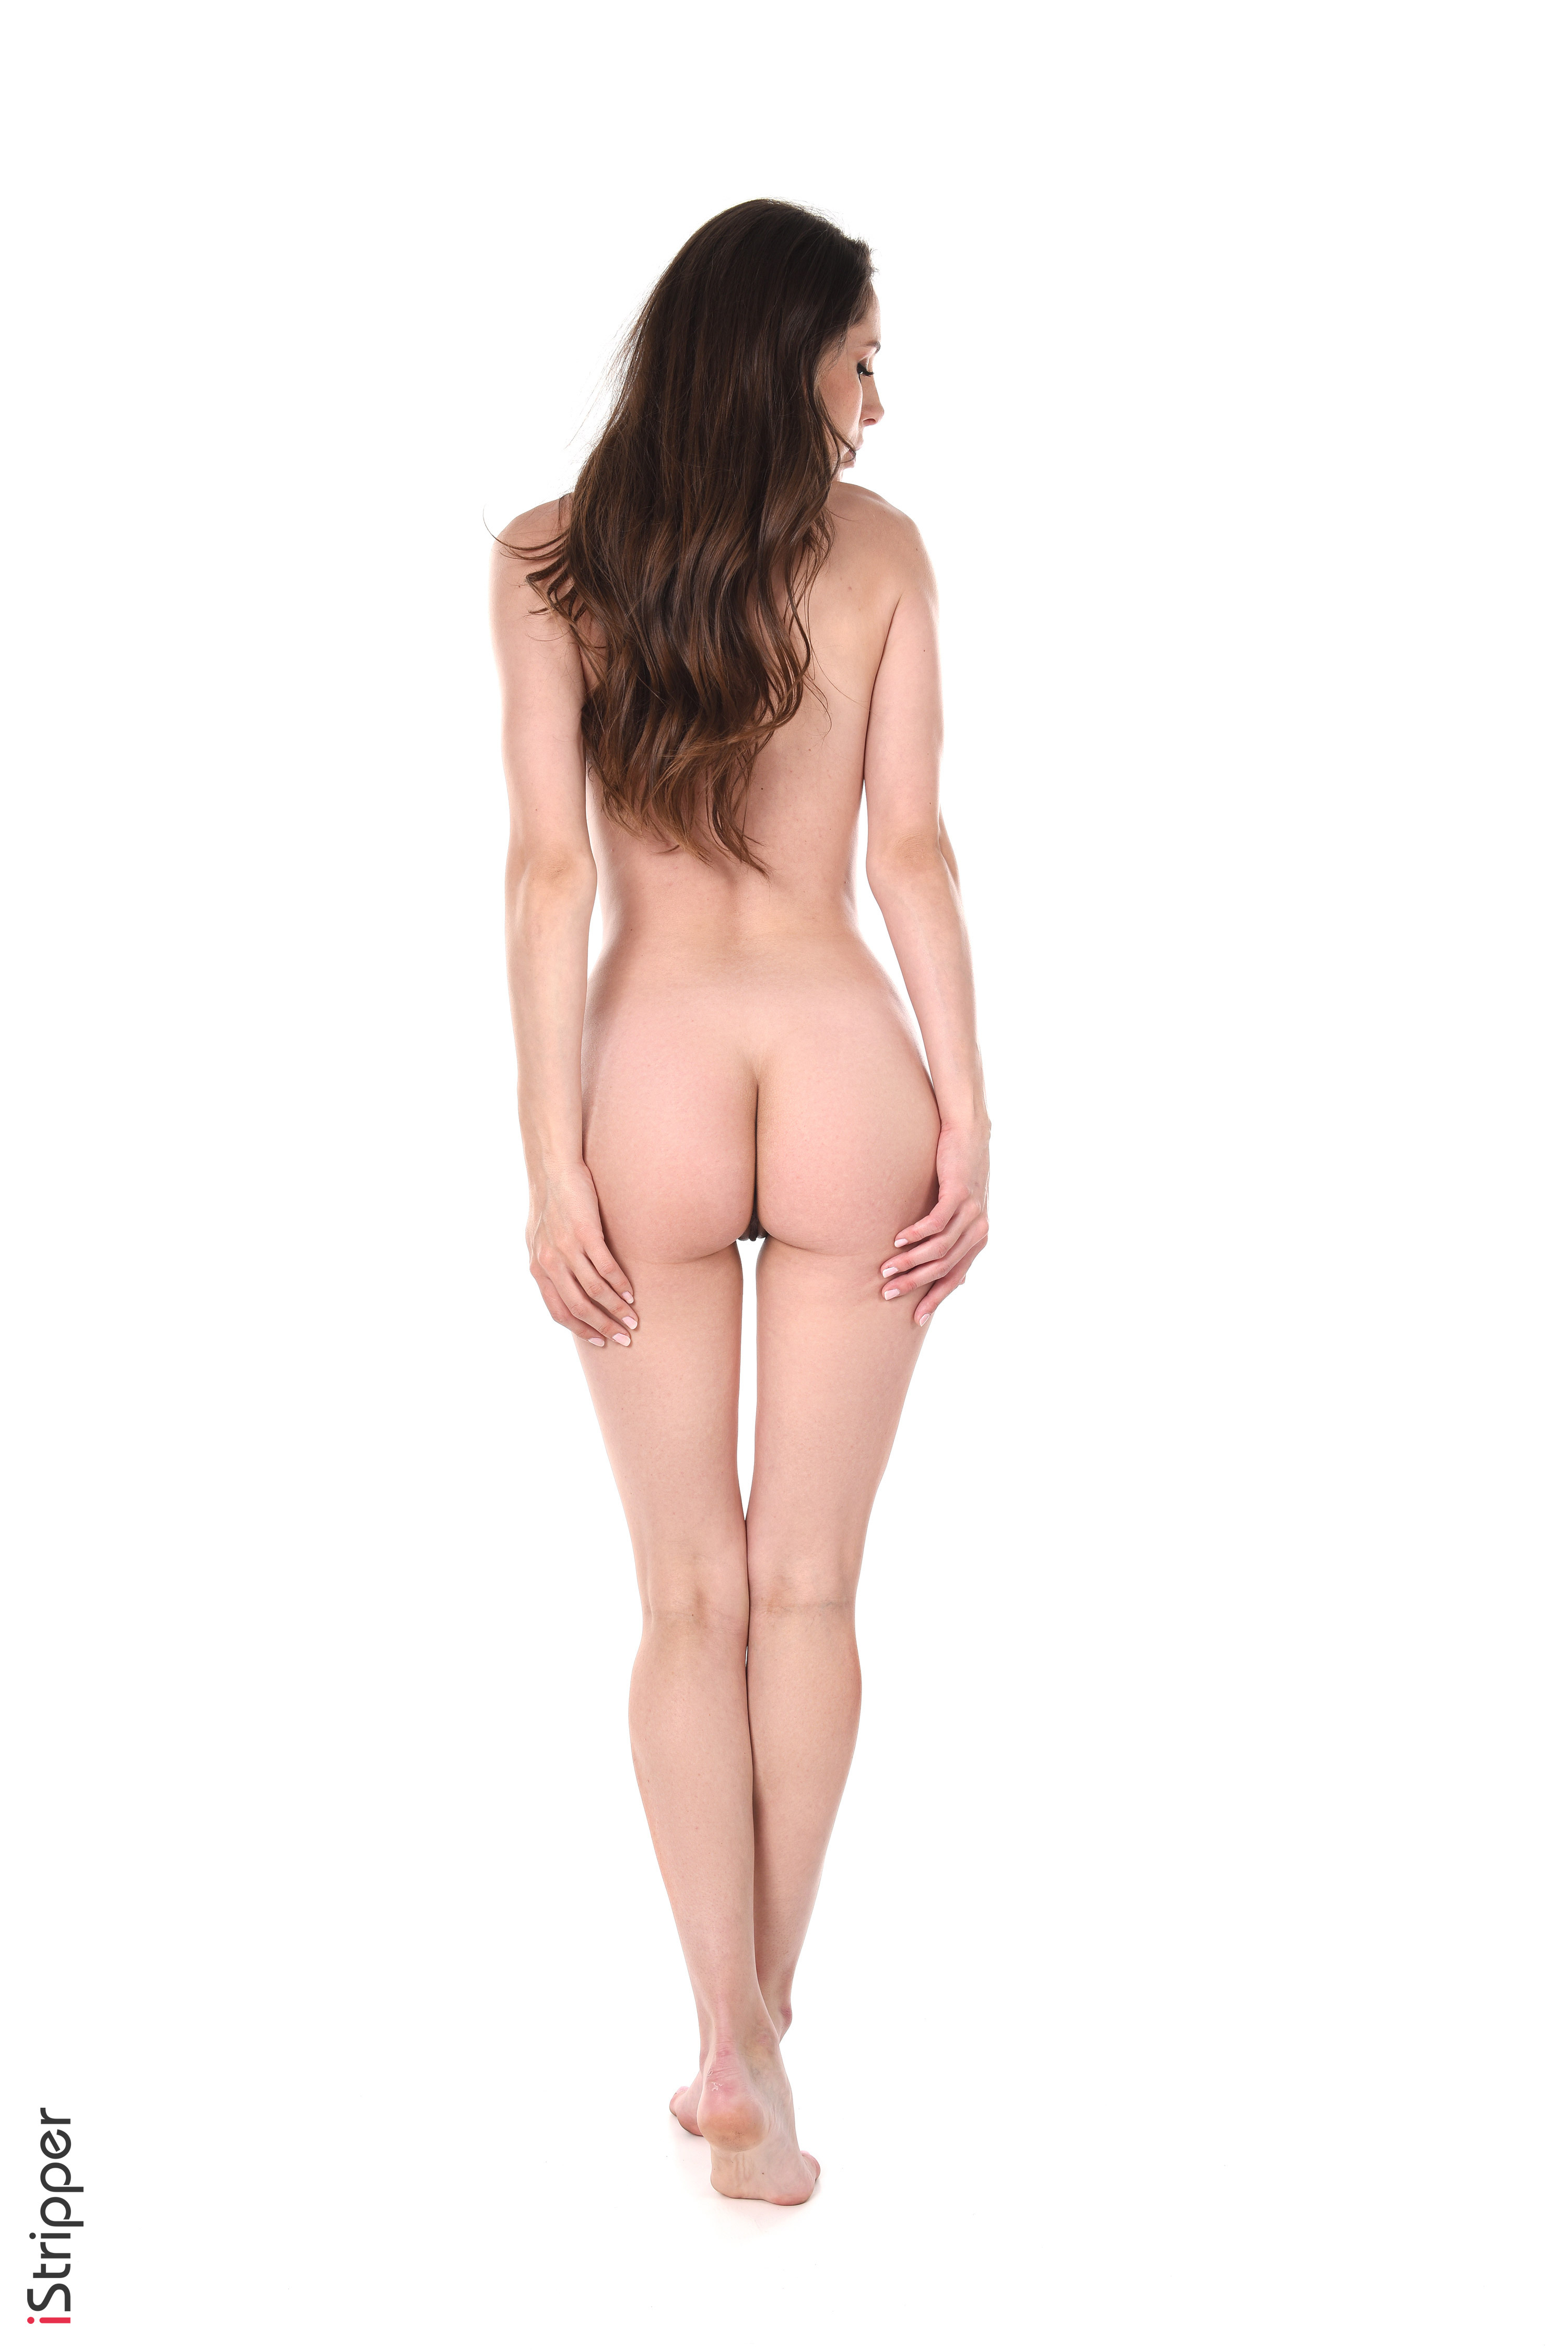 naked girl wallpapers free